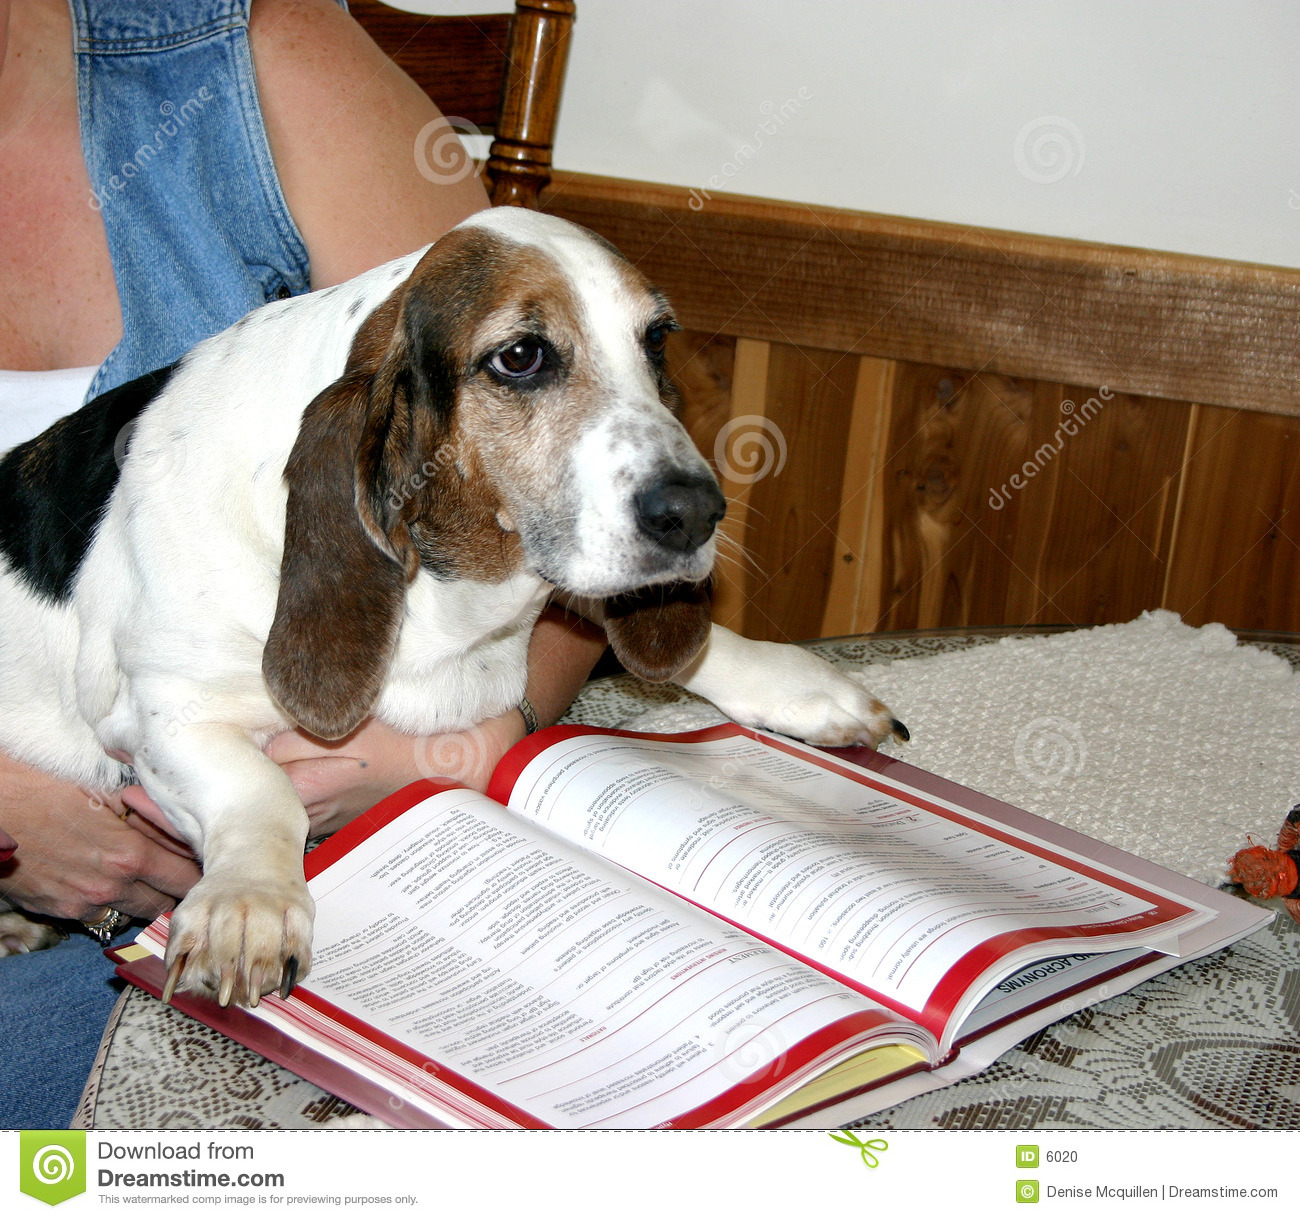 Educated dog